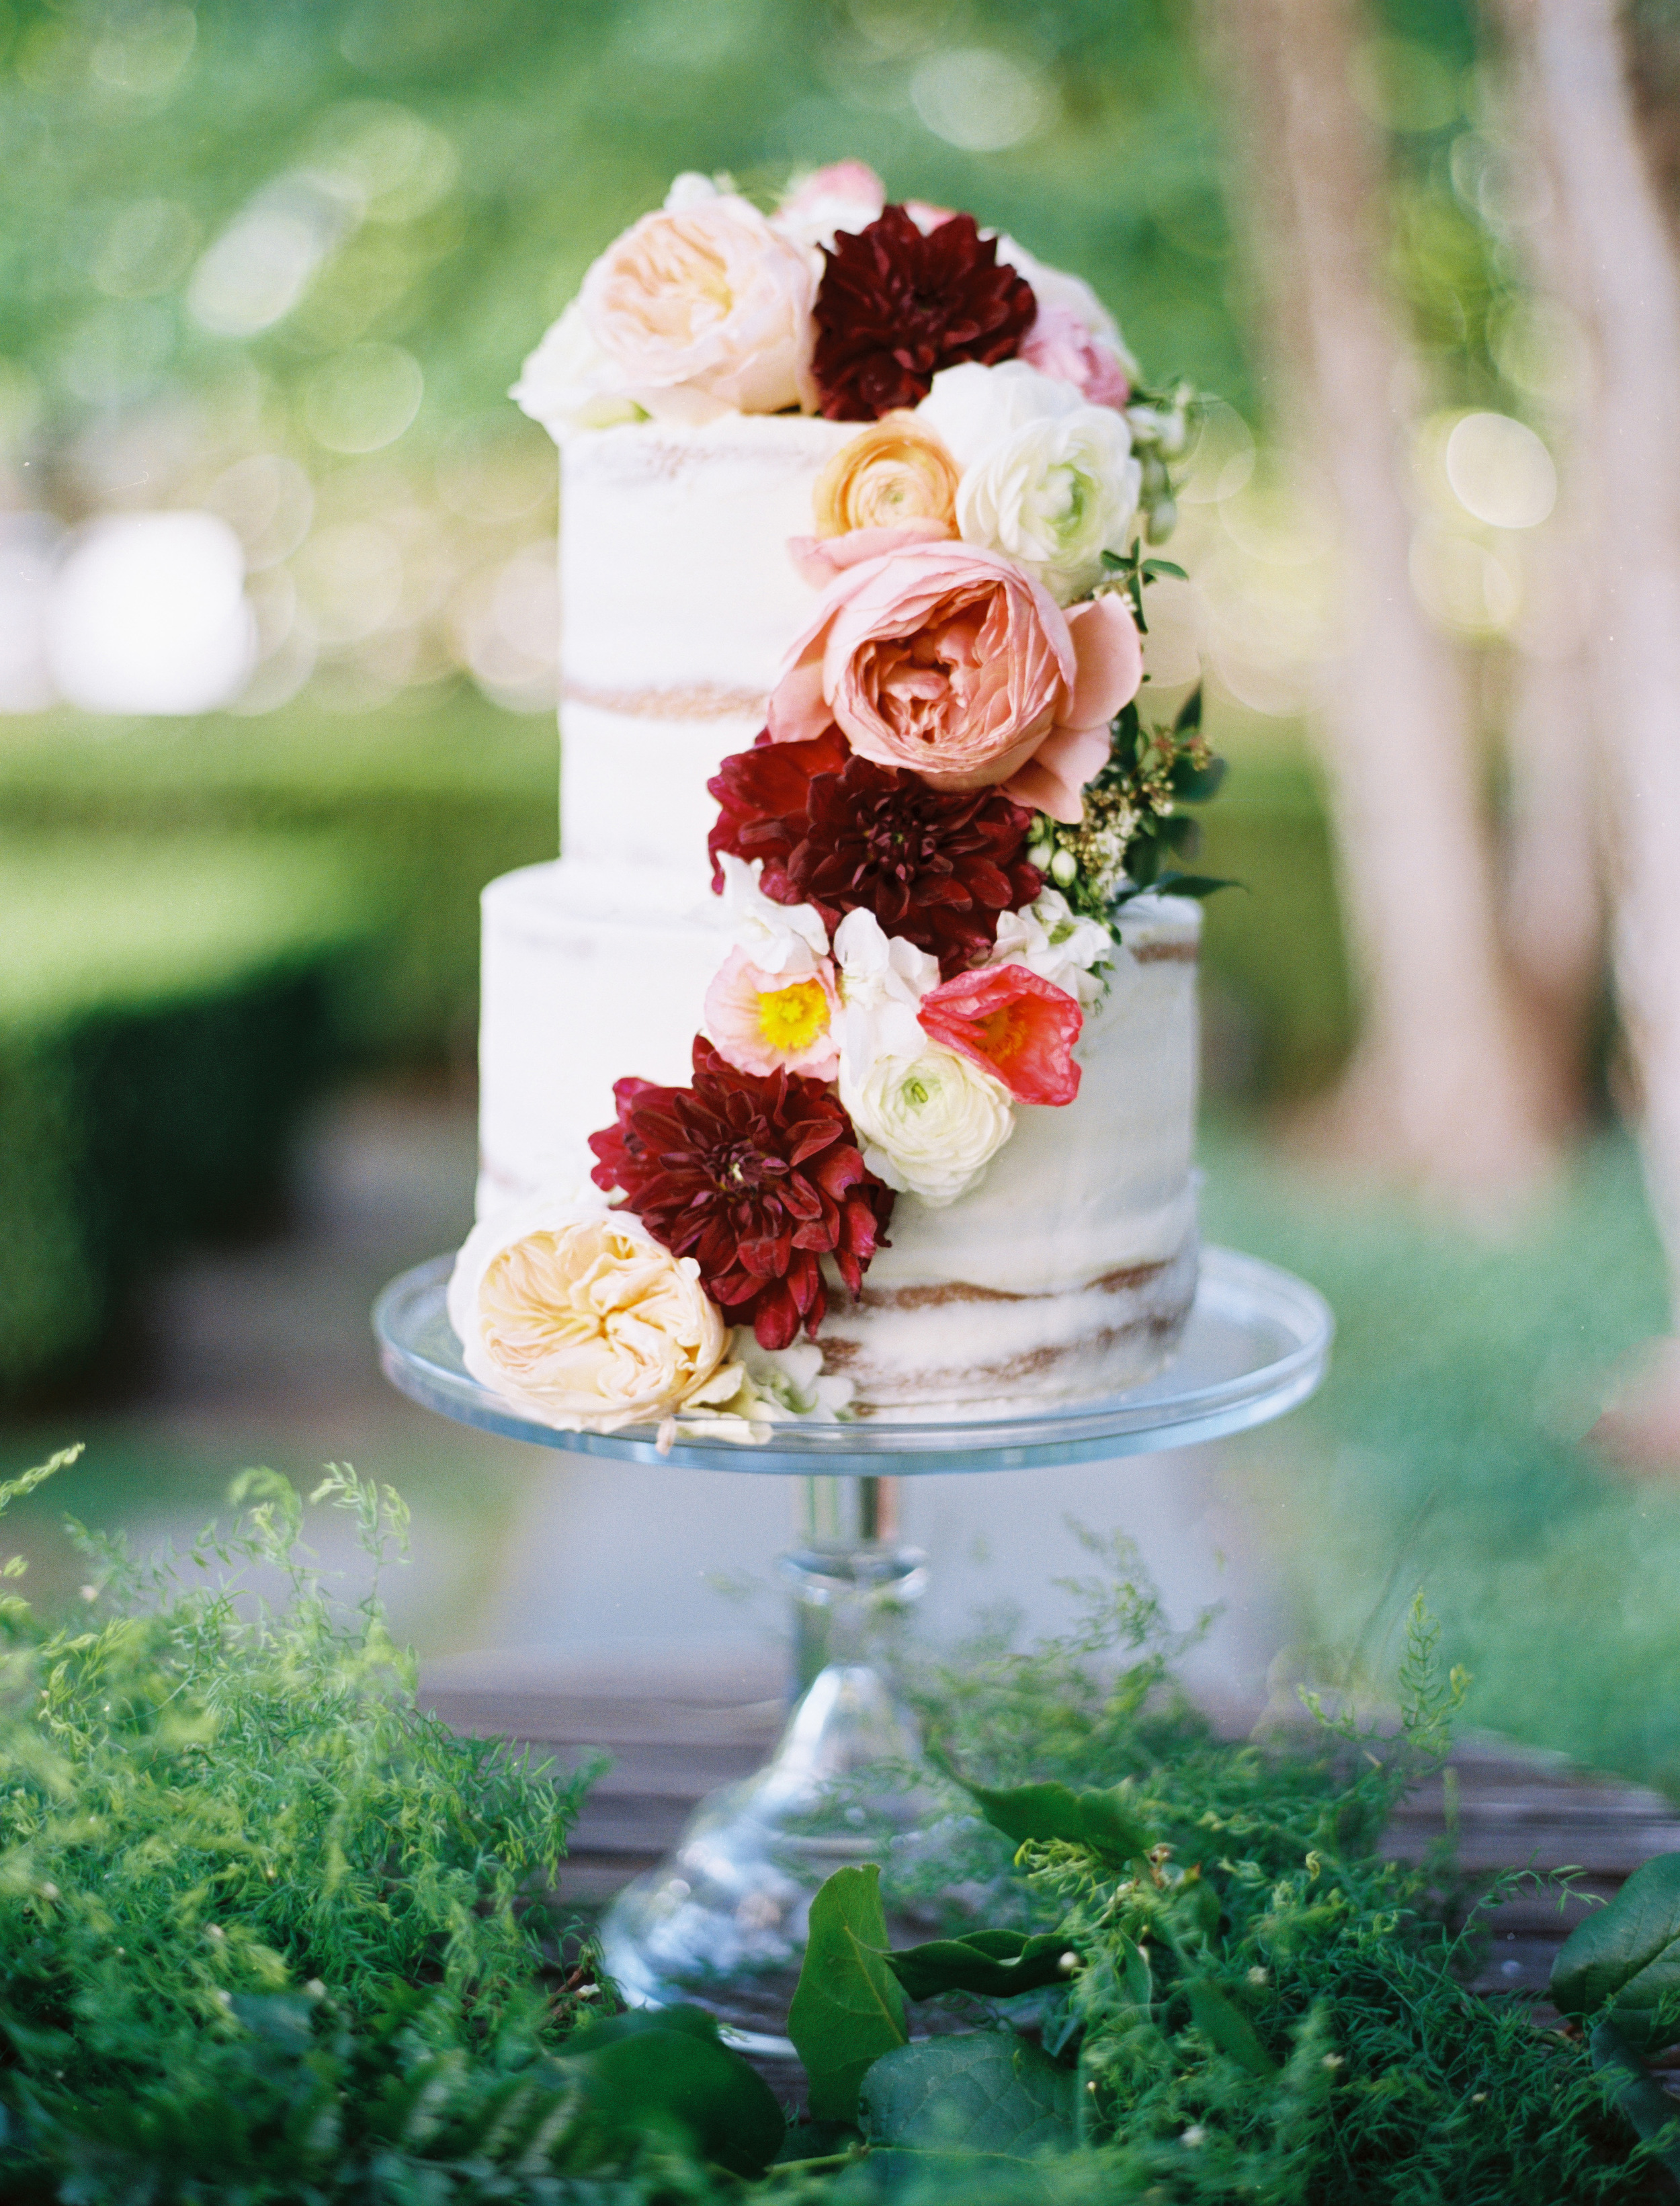 custom-wedding-cake-textured-cascading-flowers-sugarbeesweets.jpg